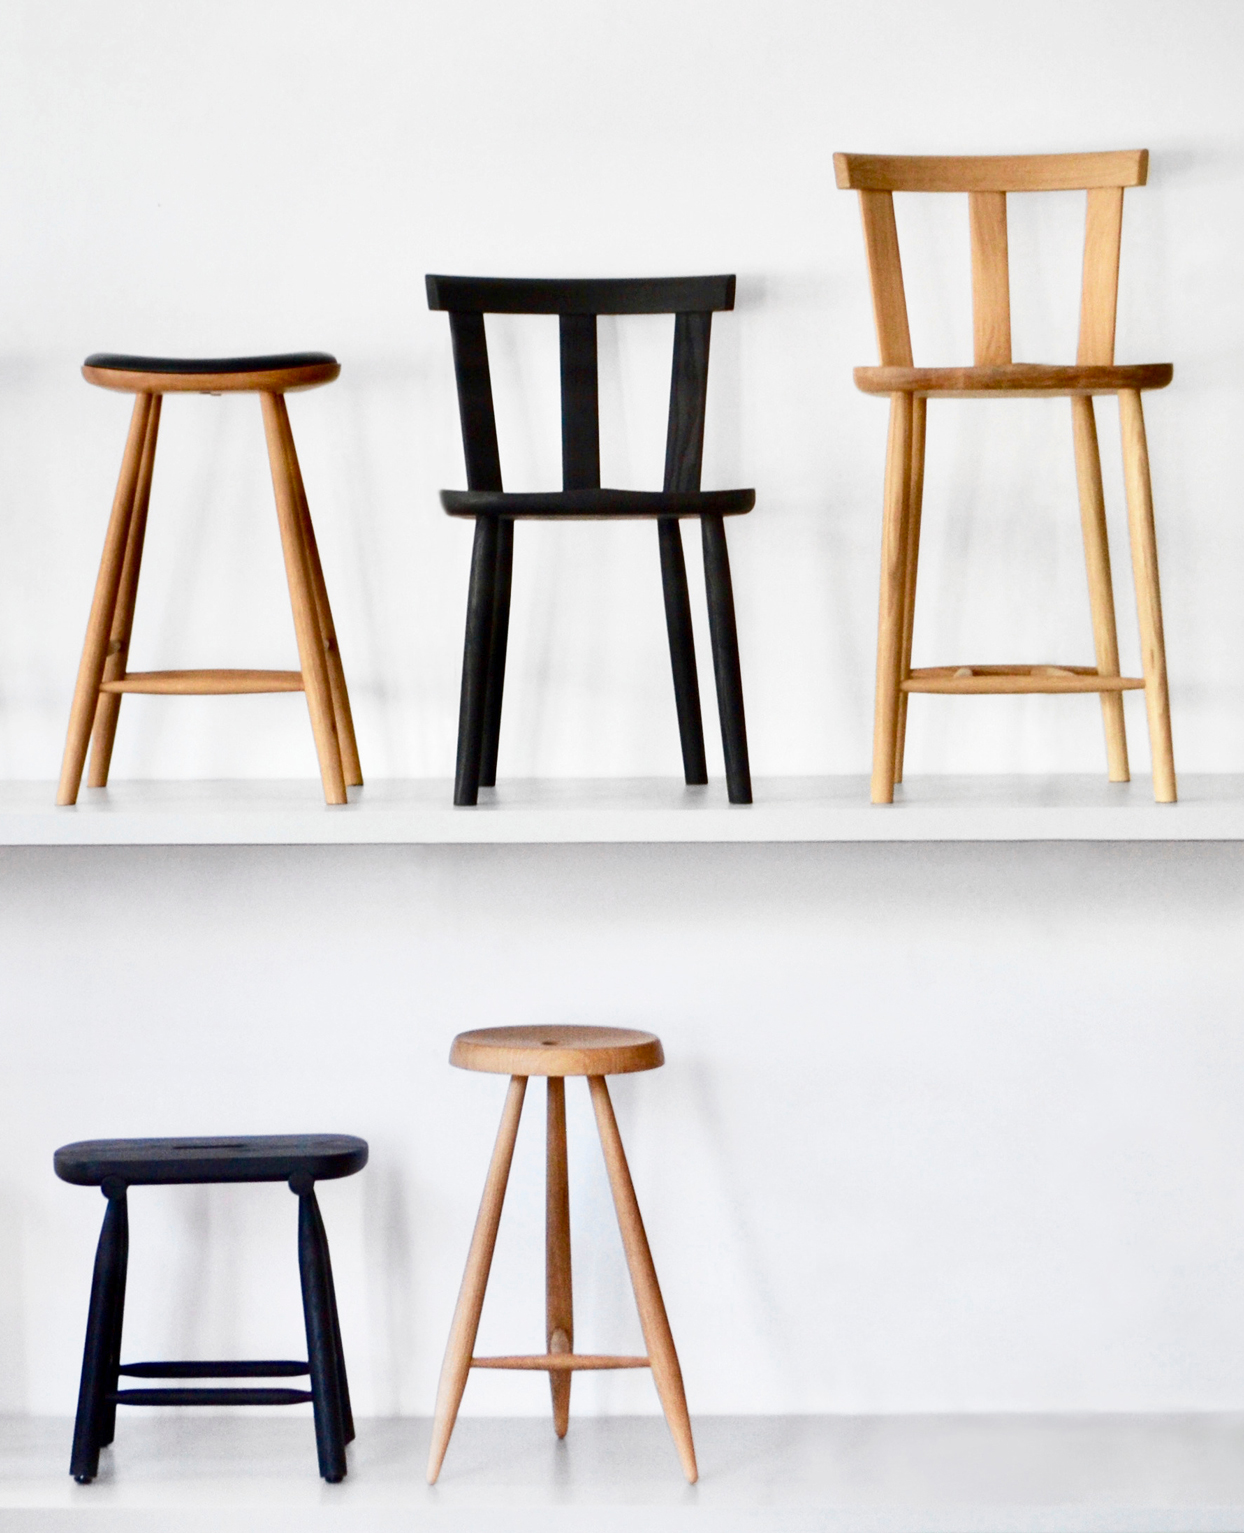 handmade wooden stools and chairs